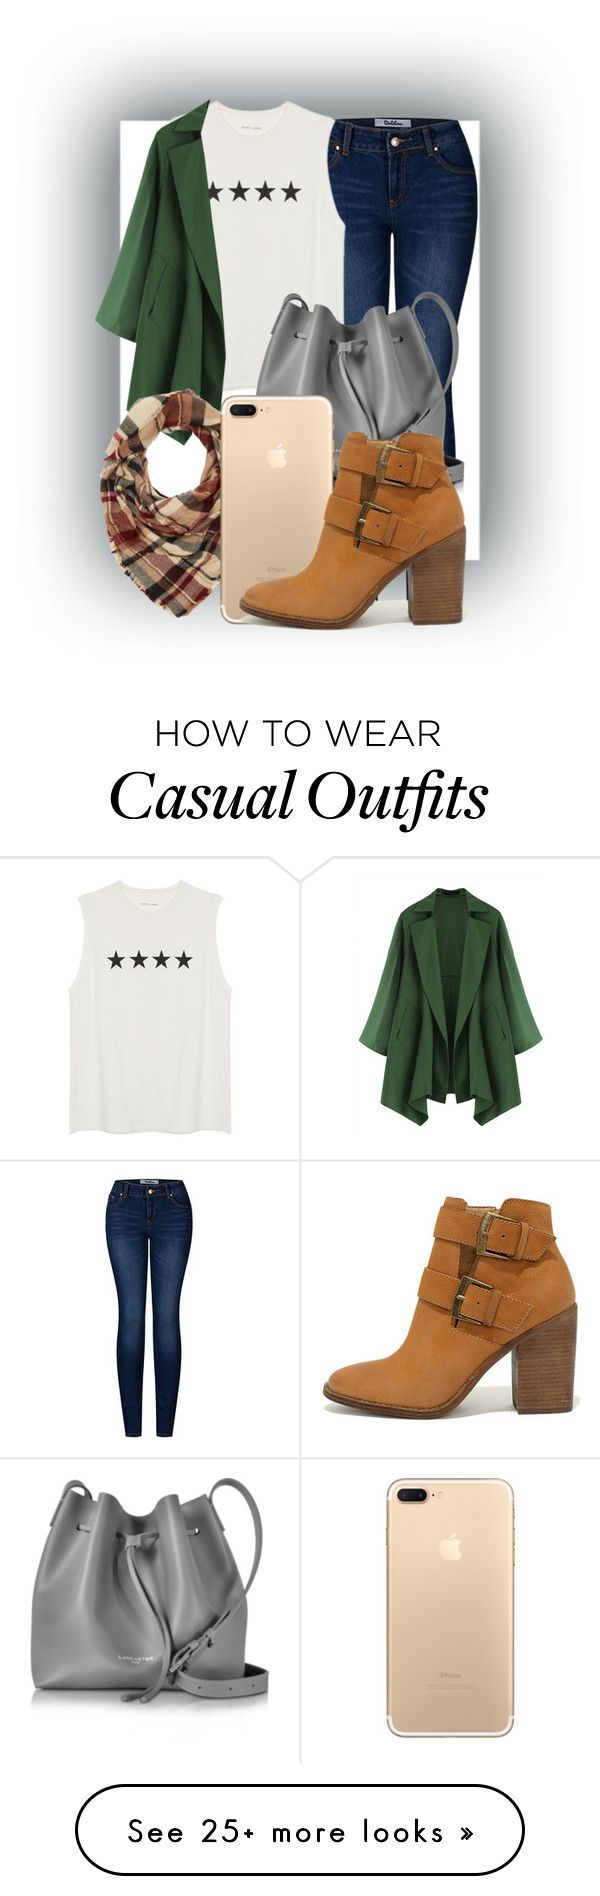 """""""Casual Weekend"""" by alittledramatic on Polyvore featuring 2LUV, Lancaster, Charlotte Russe, Steve Madden, weekendoutfit and weekendessentials"""